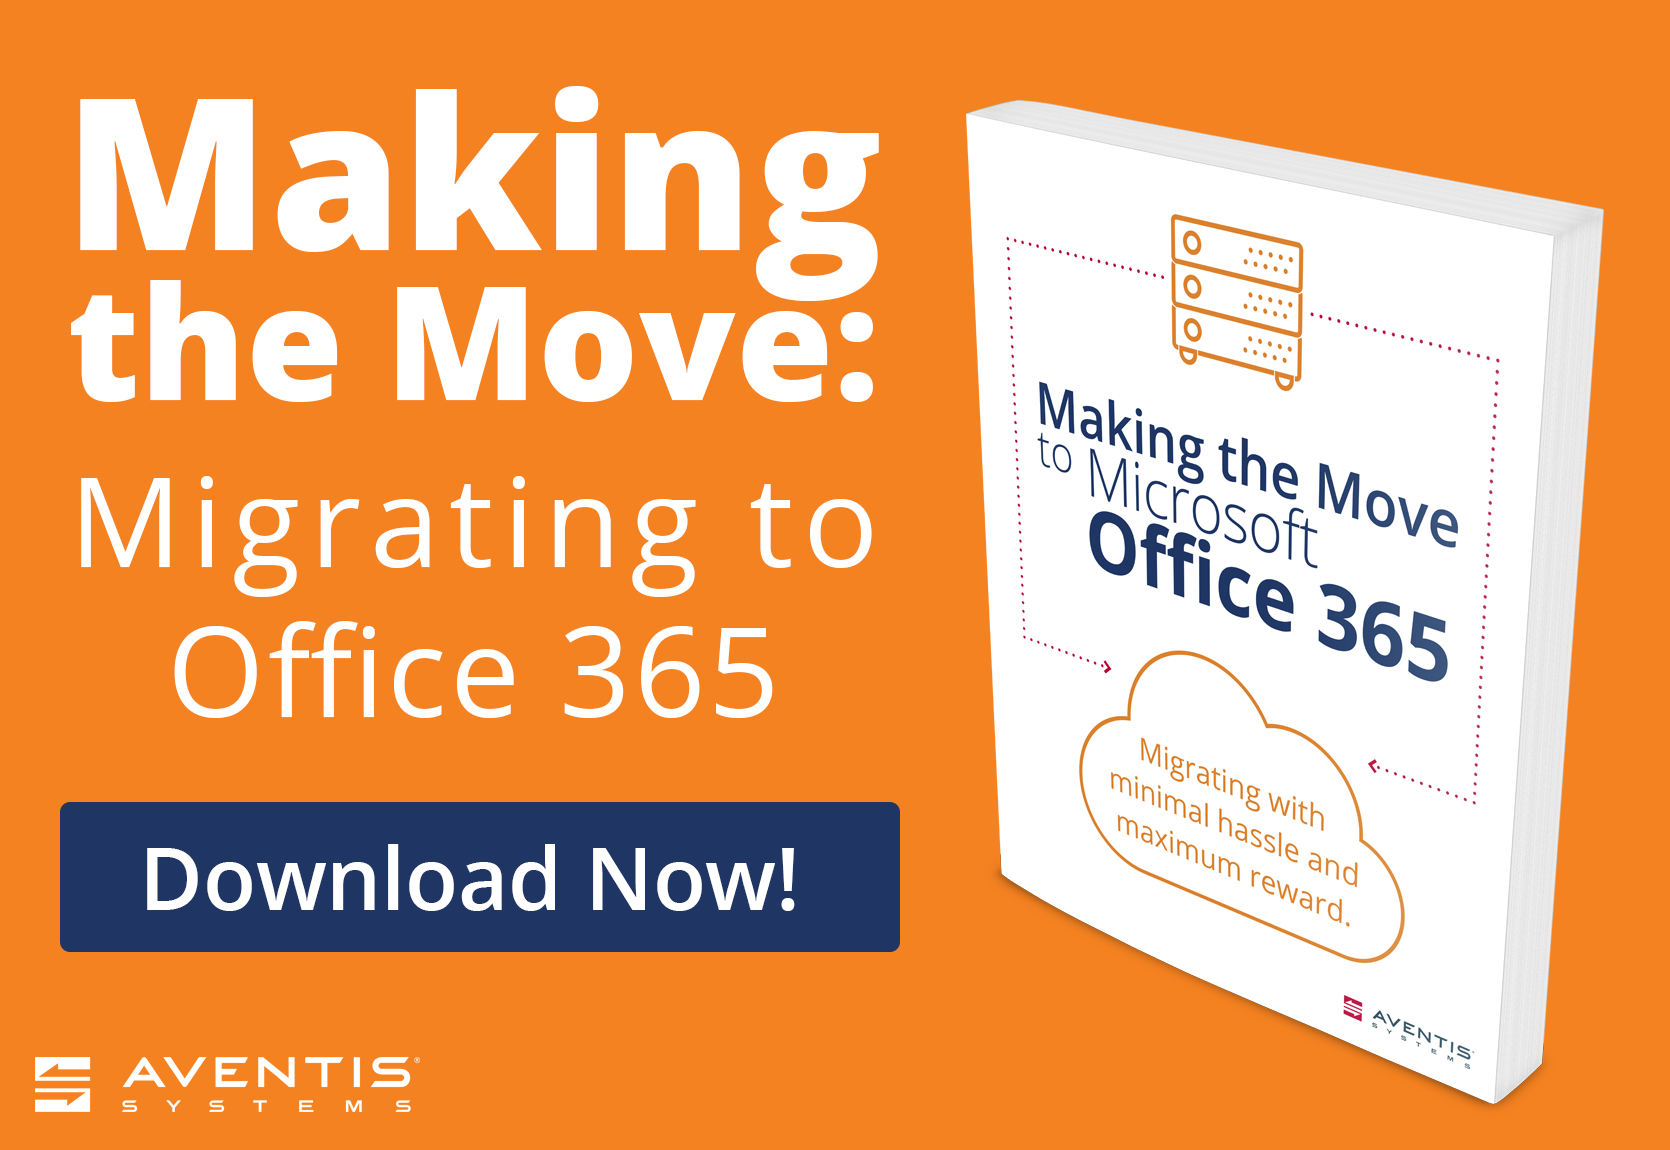 Making the Move to O365